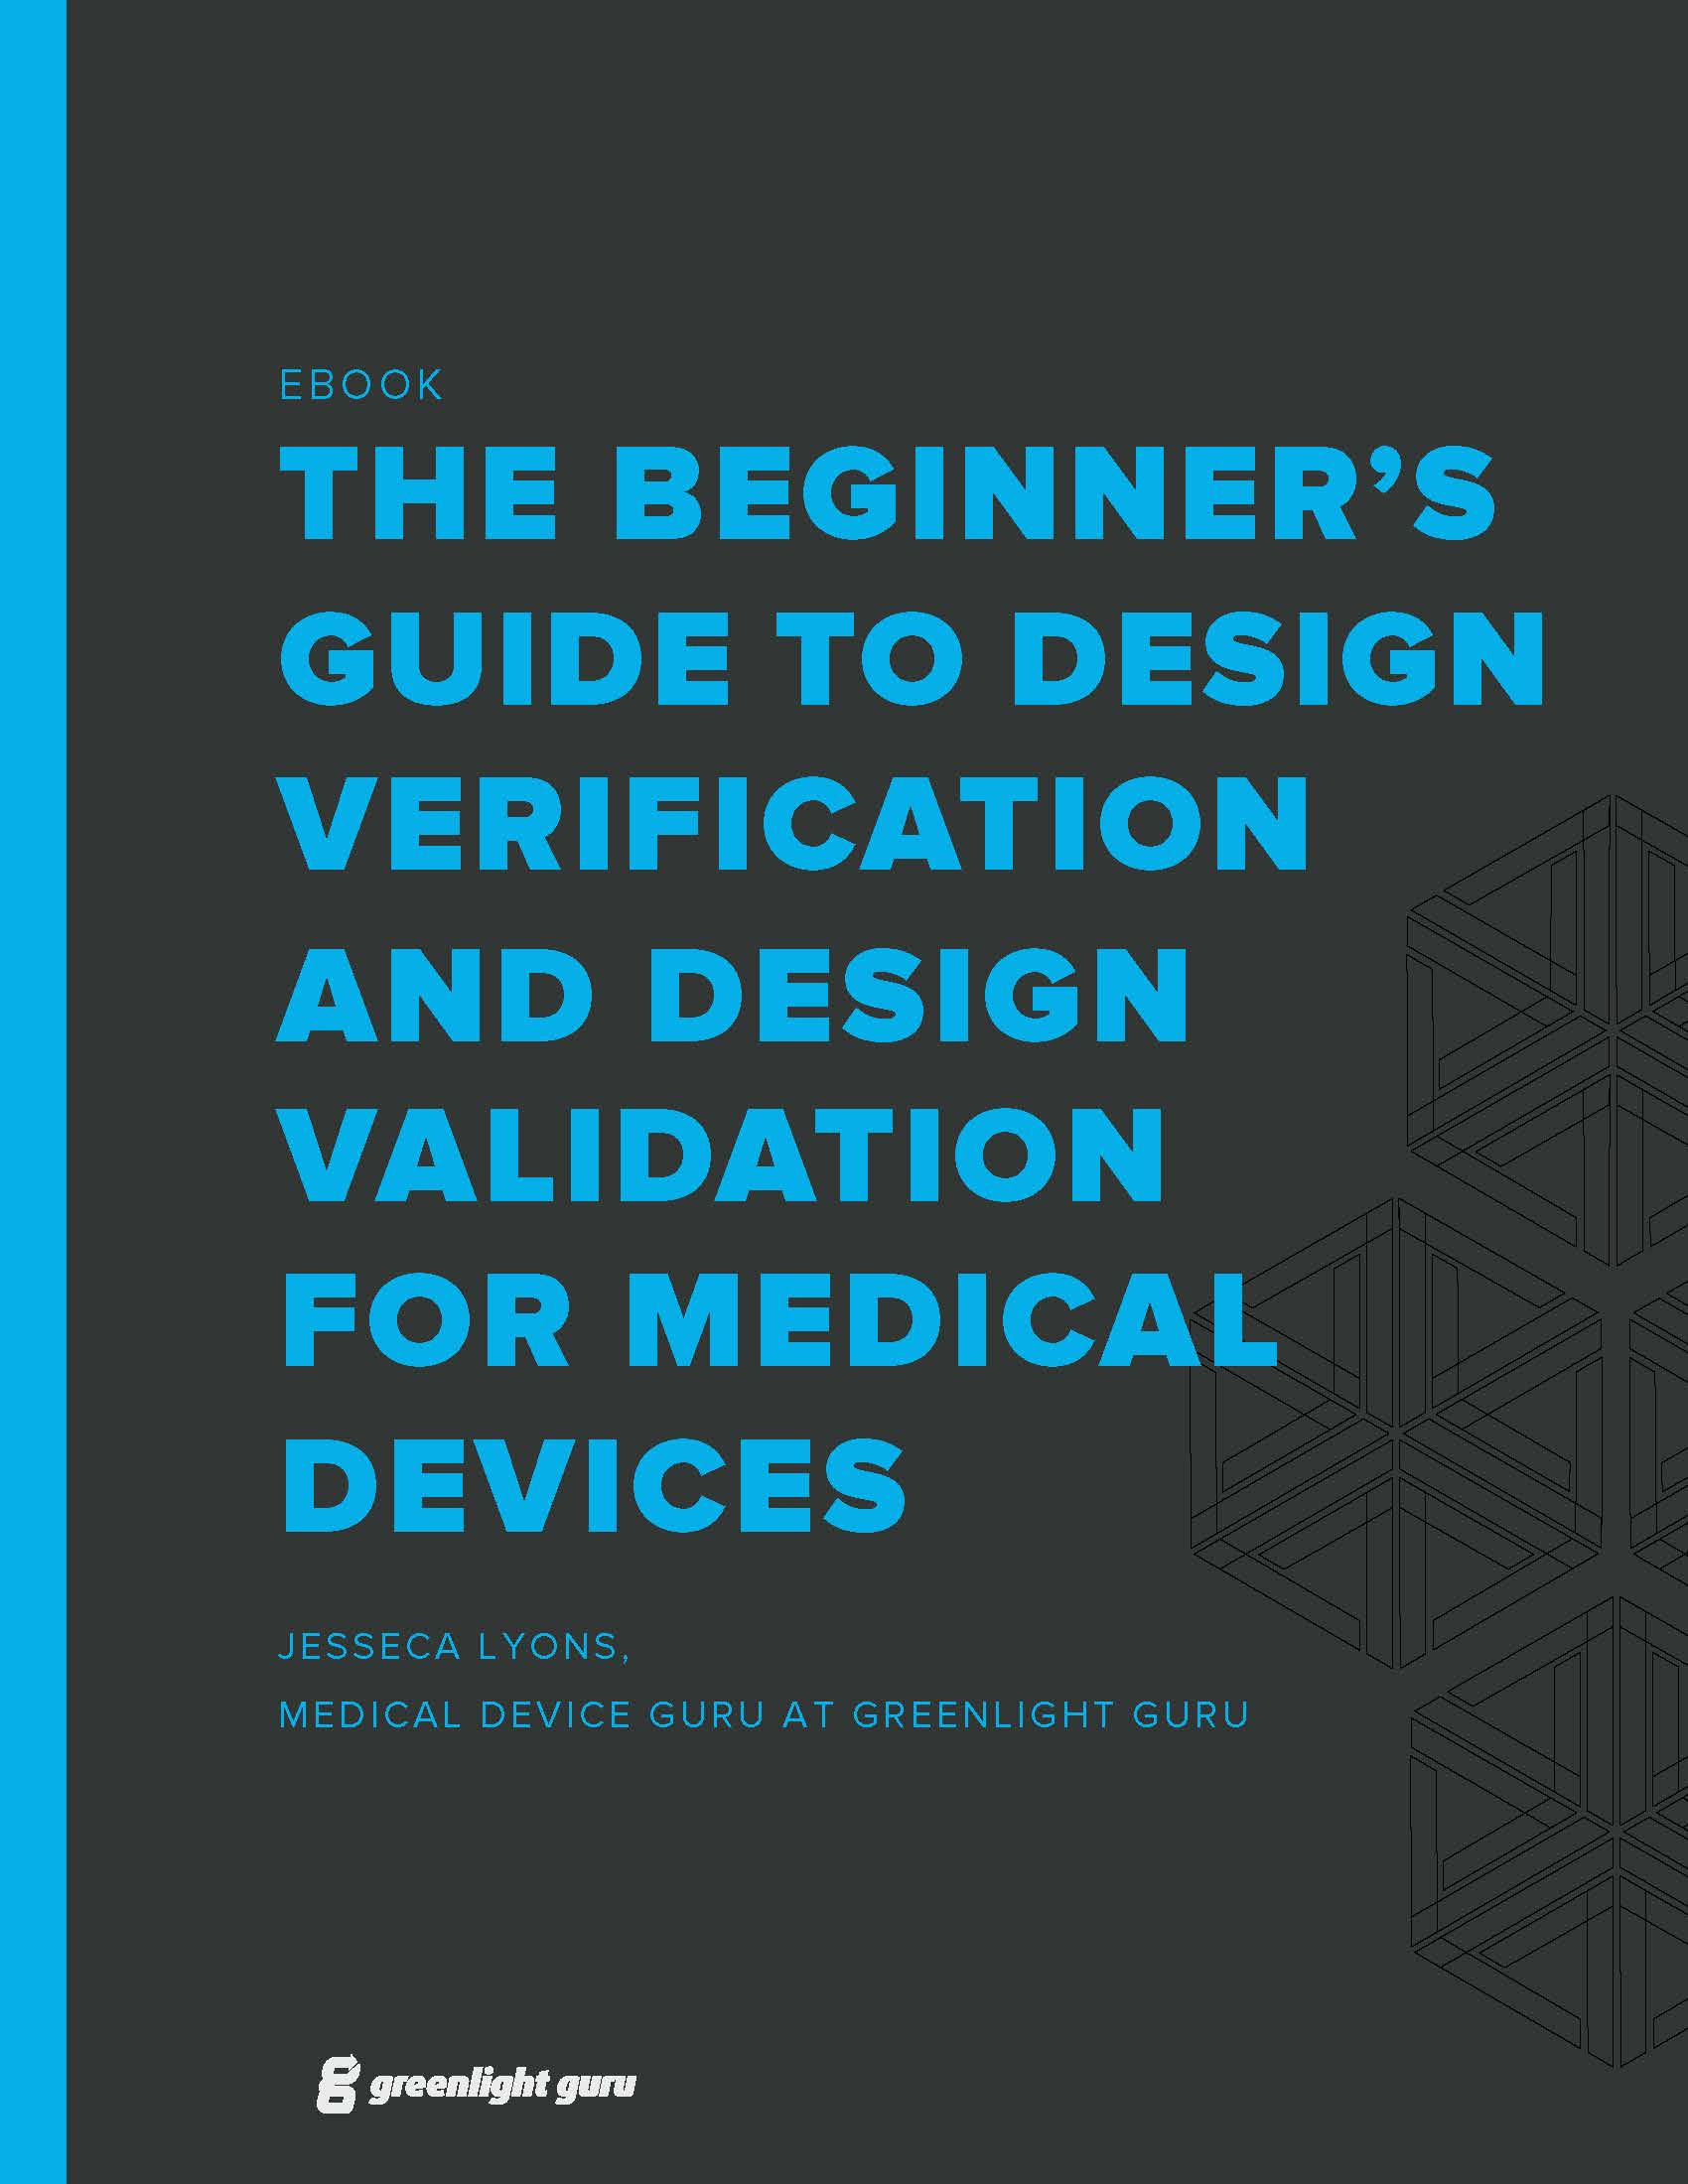 Design Verification & Validation for Medical Devices